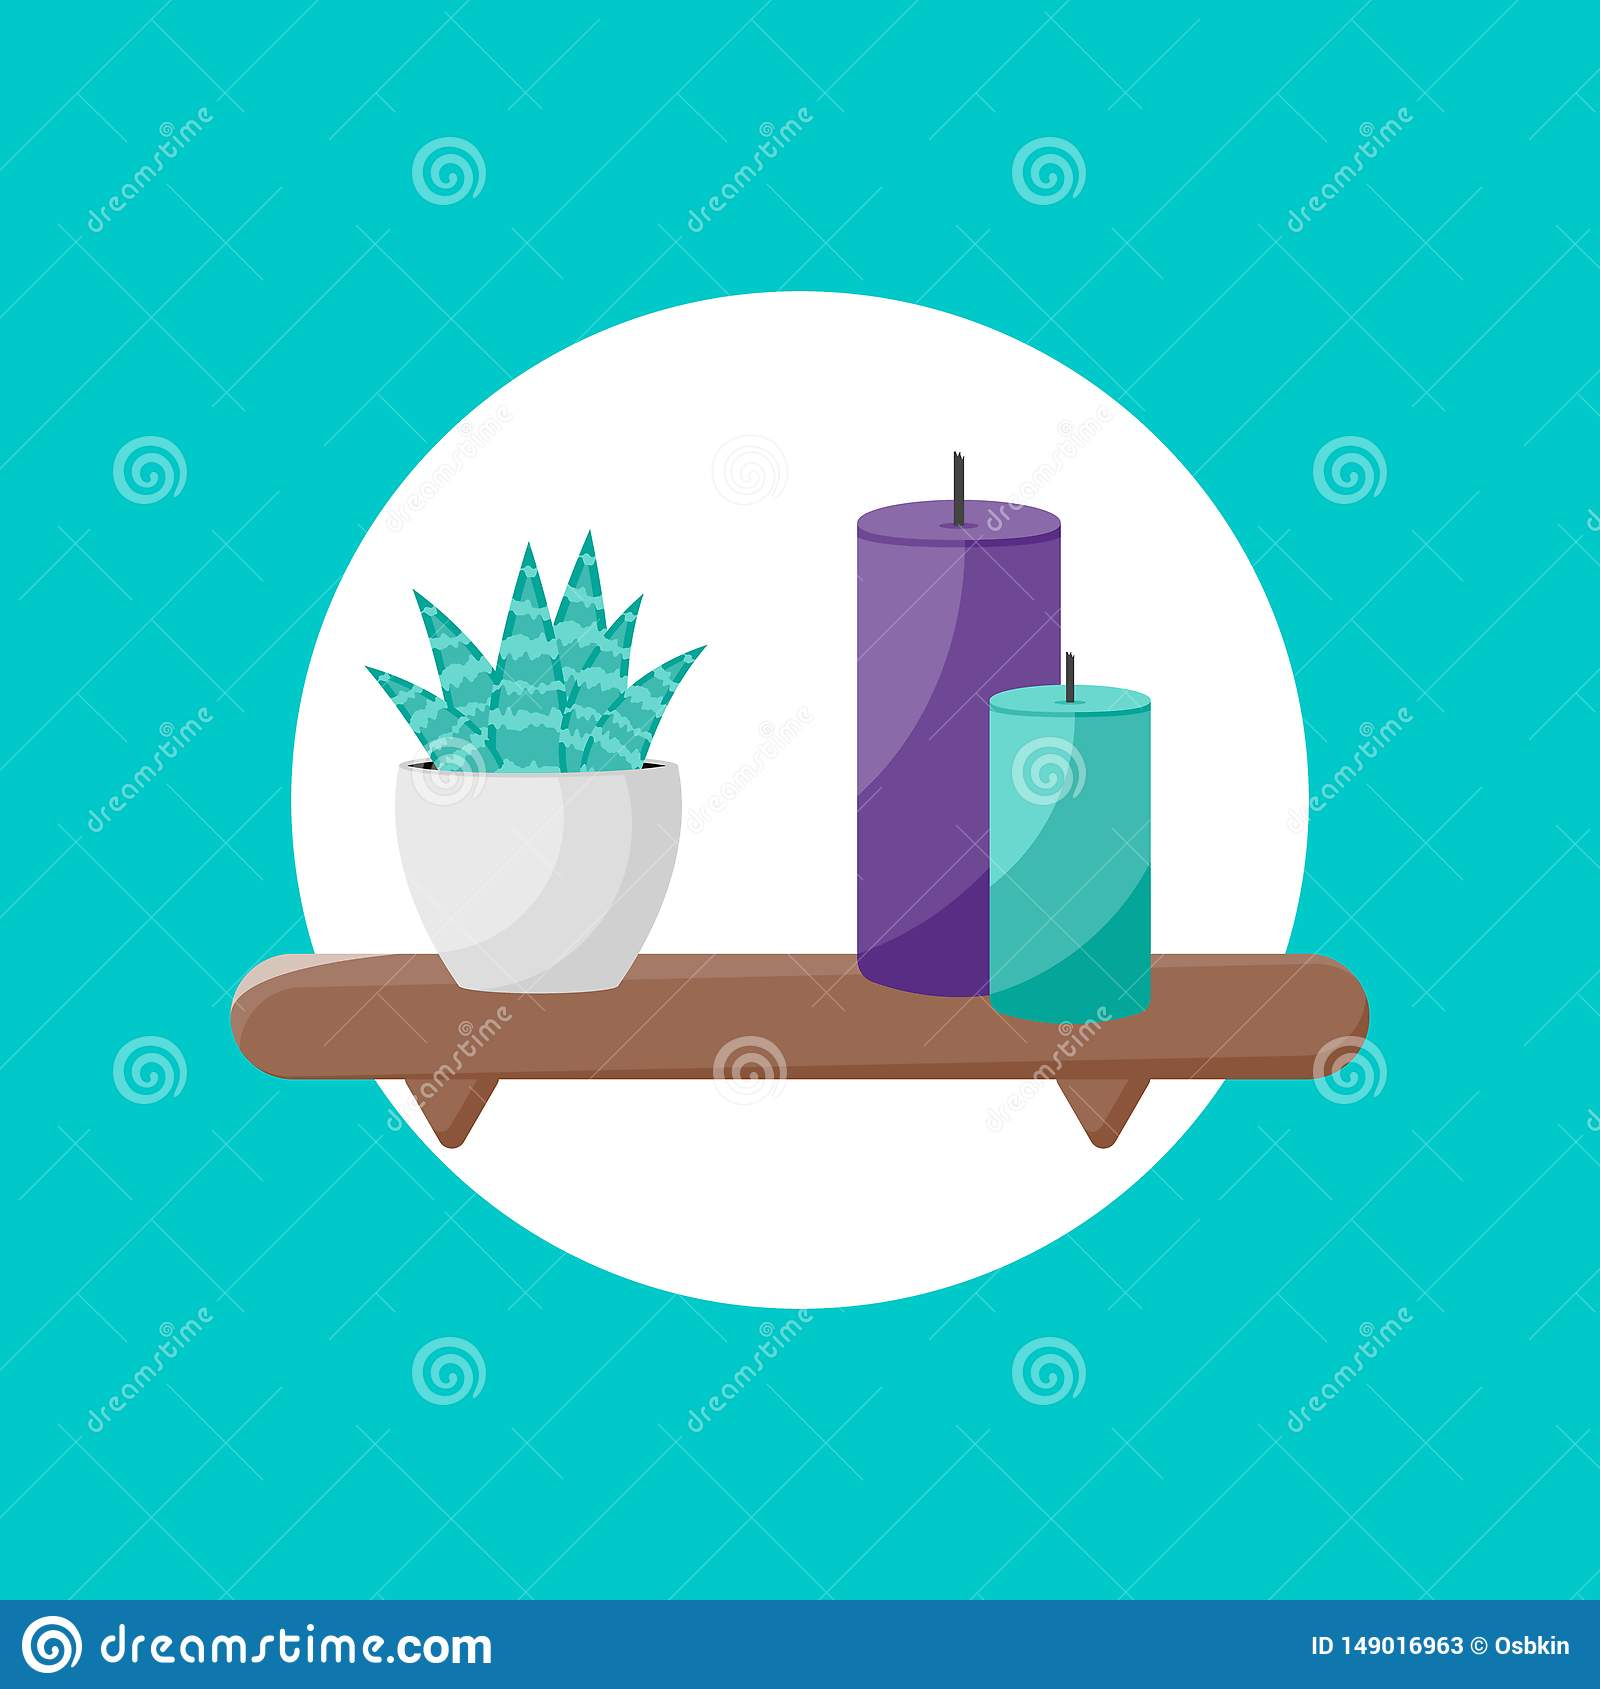 Shelf icon with plant and candles icon